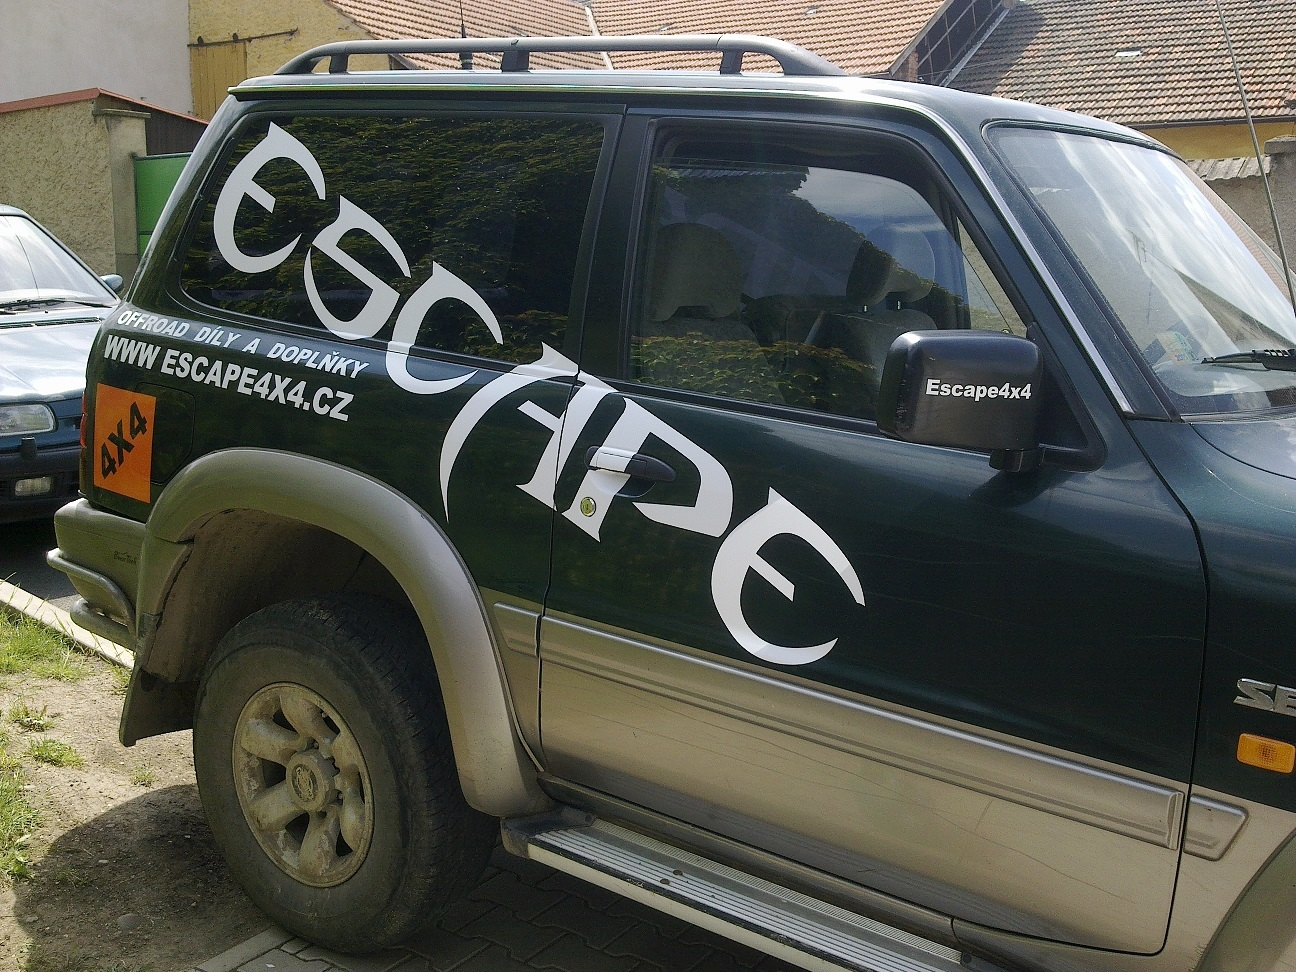 y61 escape4x4.eu